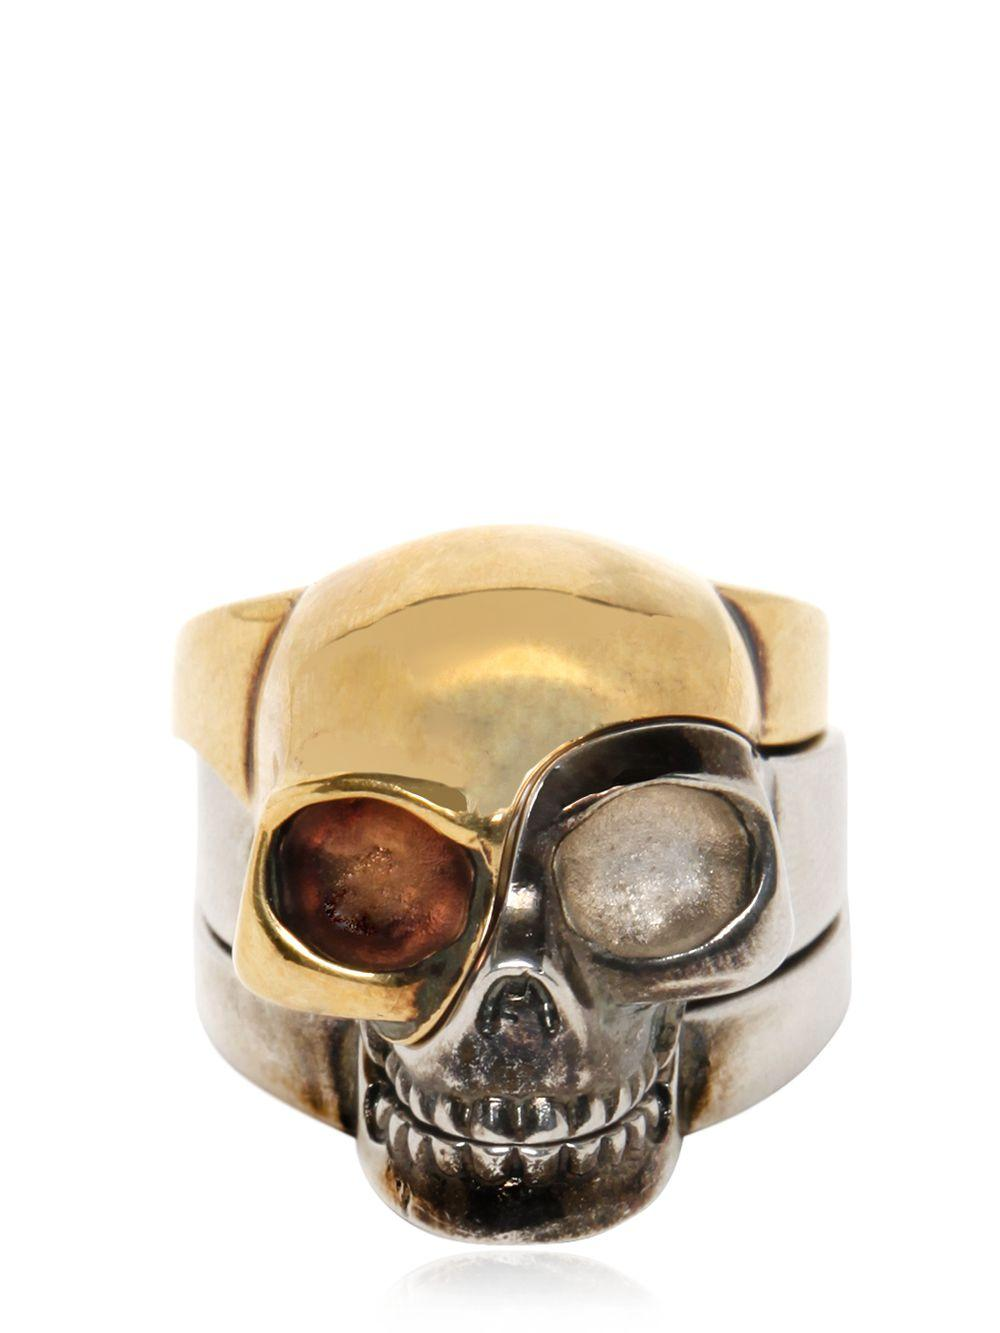 Alexander McQueen Divided Skull Ring in Gold/Silver (Metallic)